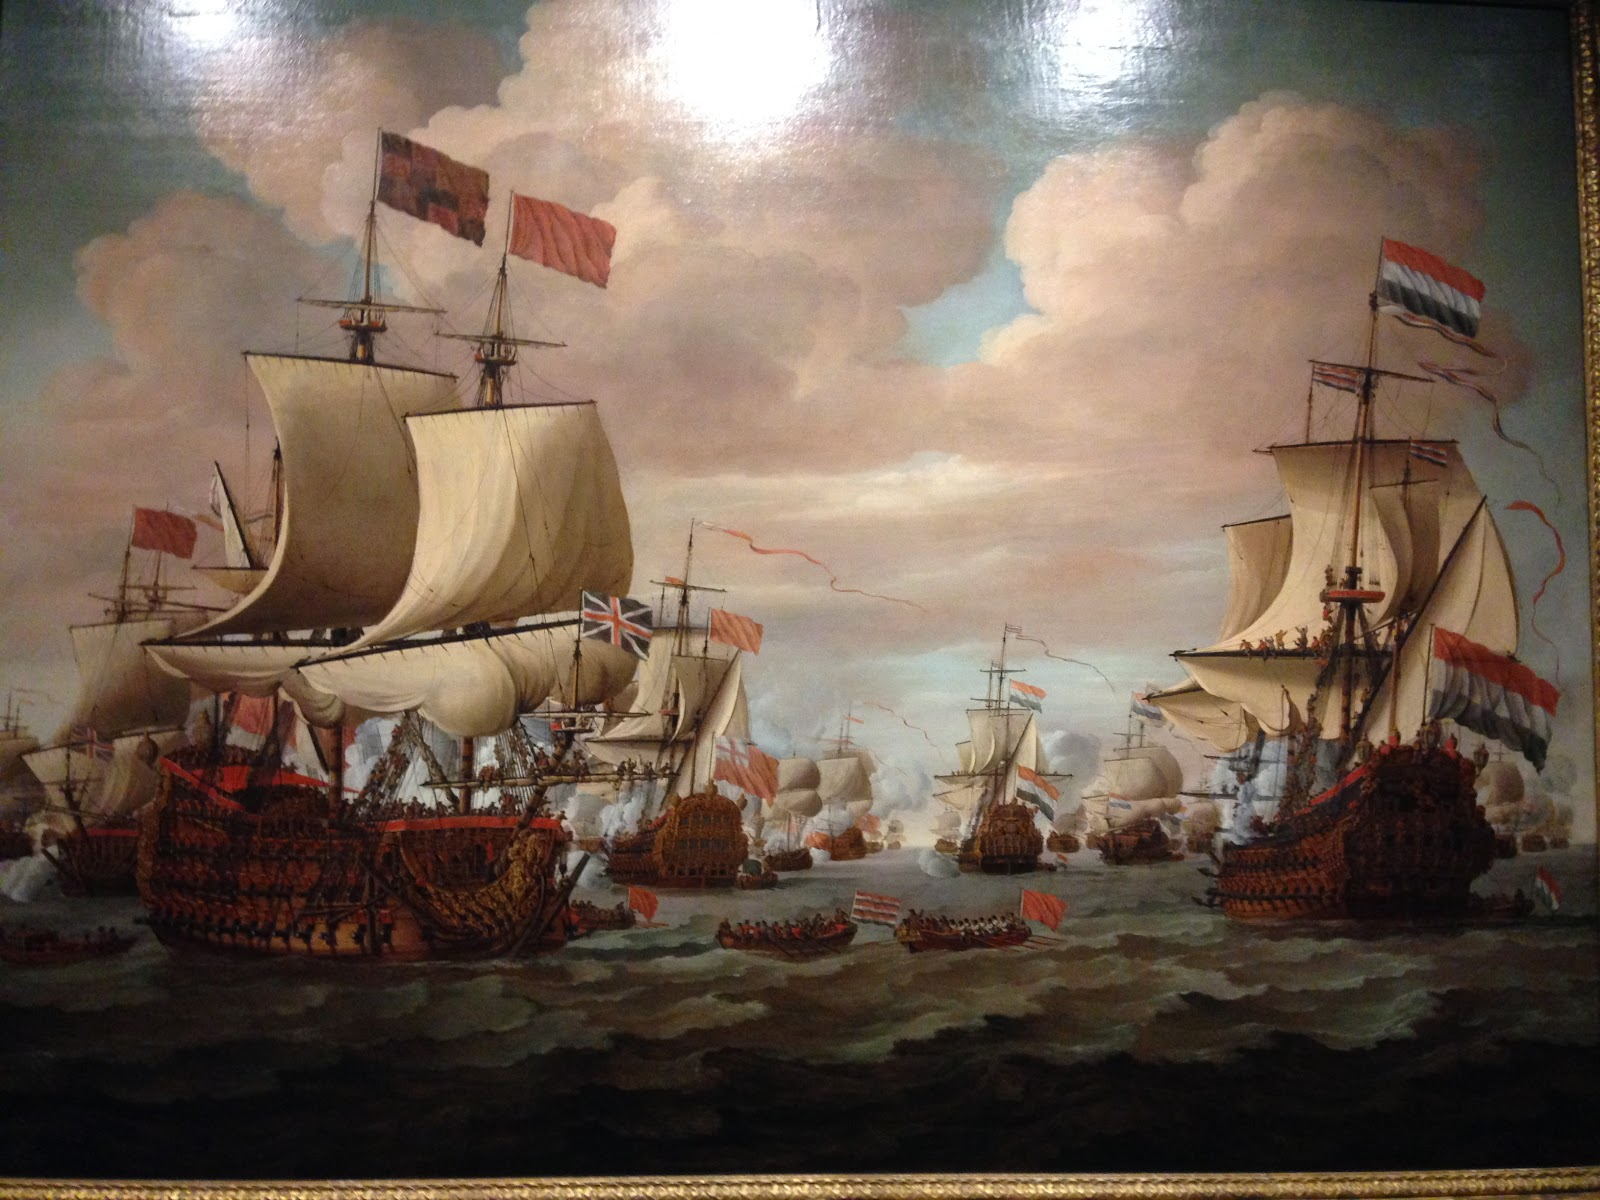 Two ships in the painting